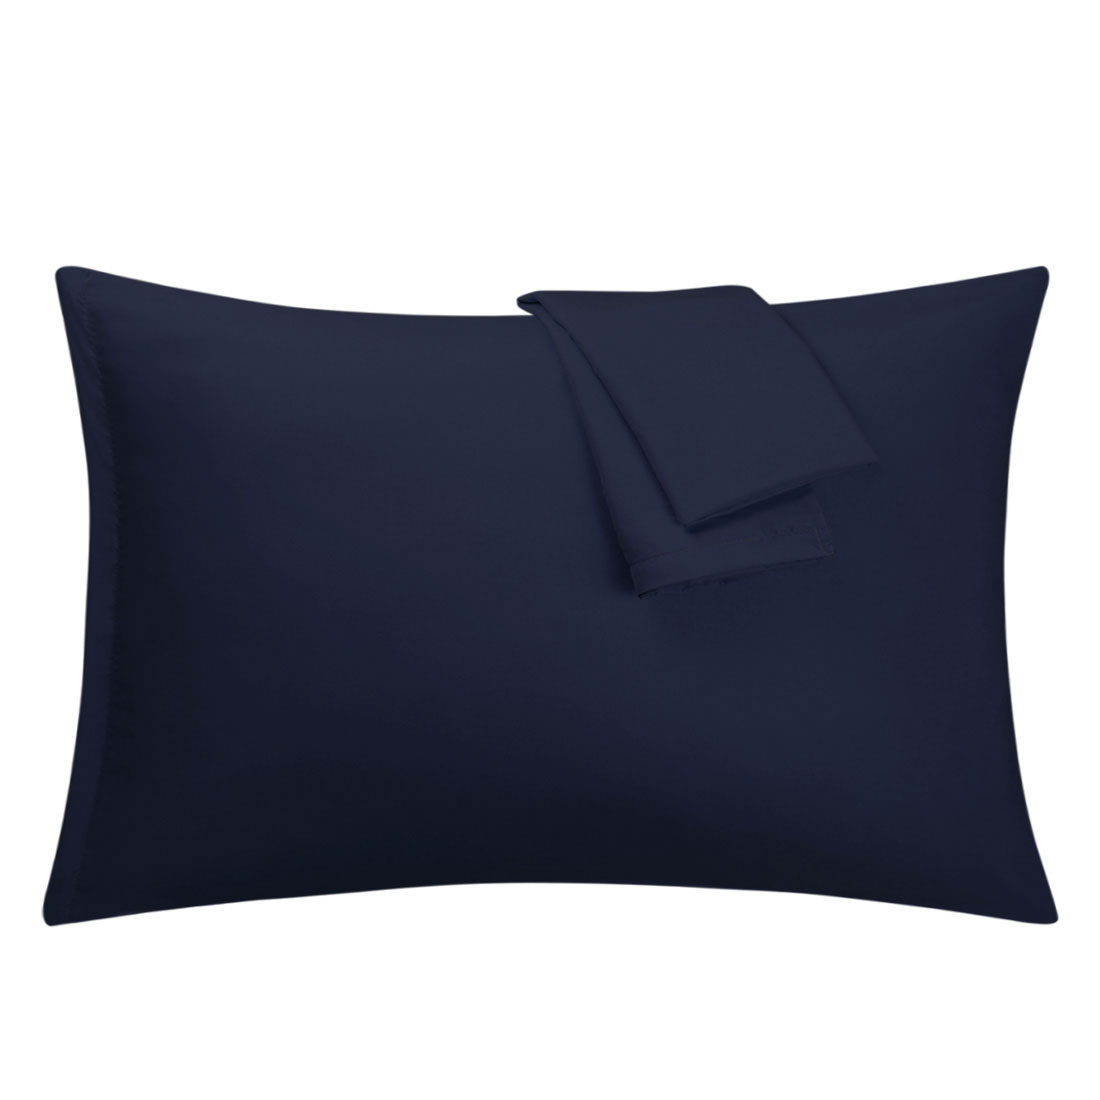 Navy Pillowcases Soft Microfiber Pillow Case Cover with Zipper Standard, 2 Pack